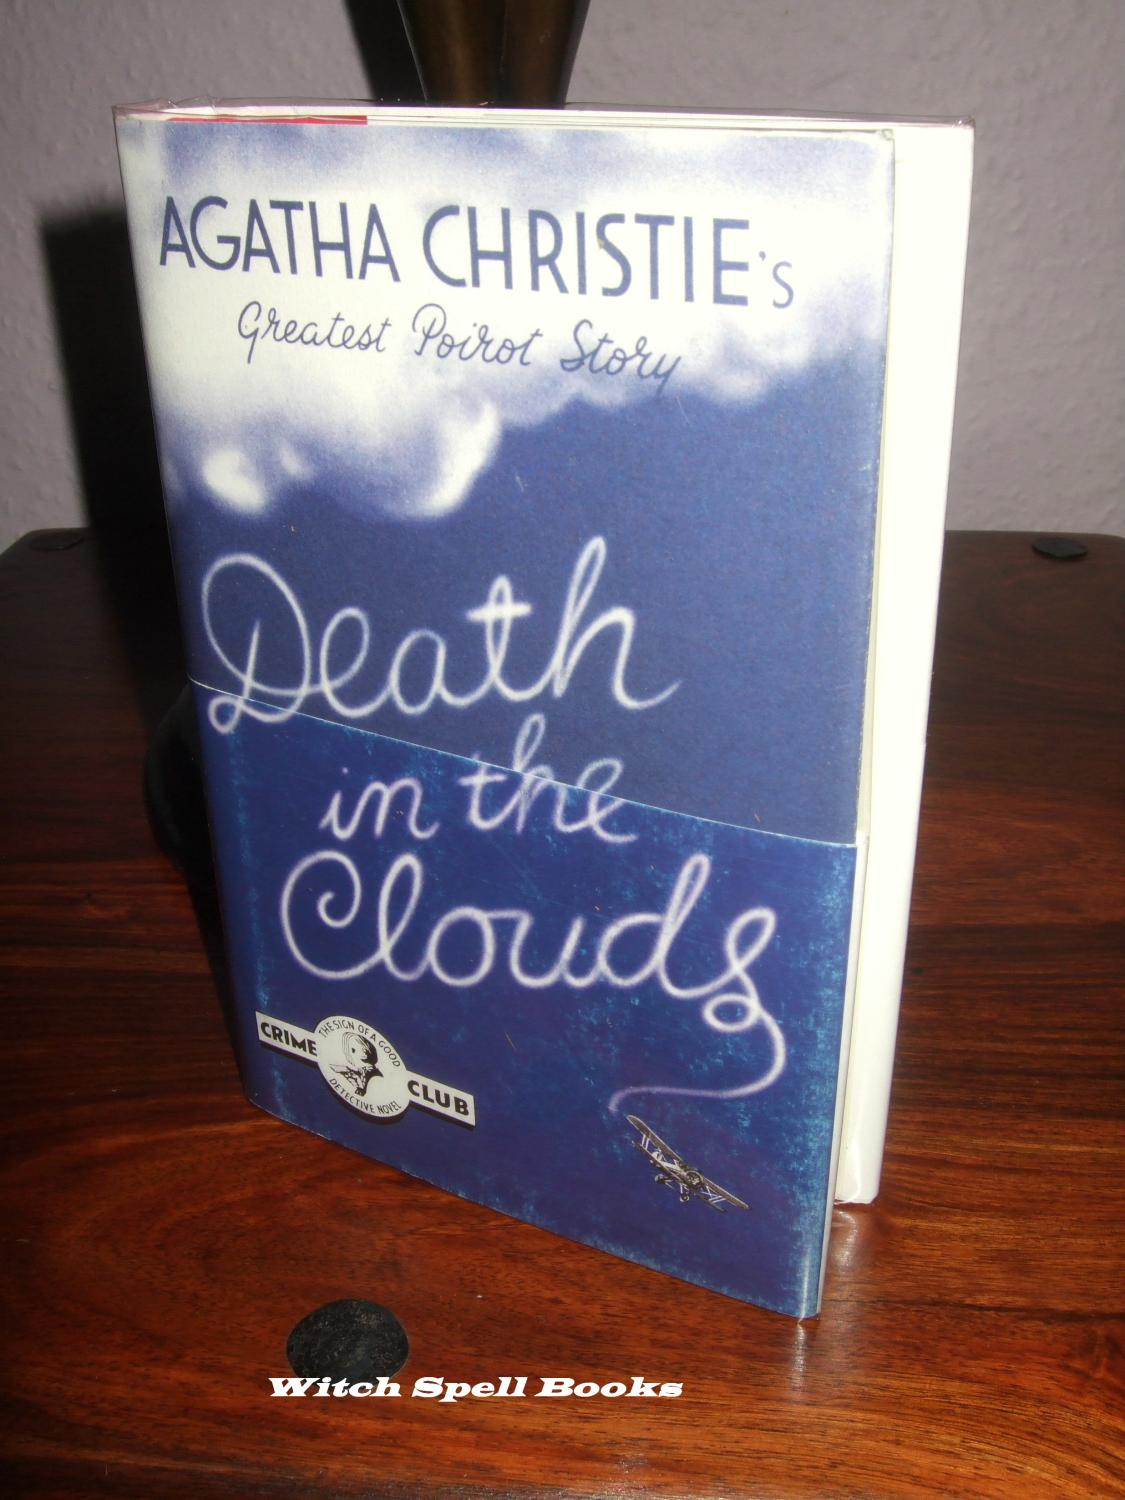 Death in the Clouds :++++FOR THE DISCERNING COLLECTOR, A BEAUTIFUL UK FIRST PRINT HARDBACK OF THE HARPER COLLINS FACSIMILE EDITION, COMPLETE WITH THE ALL IMPORTANT WRAP-AROUND BELLY BAND+++ - Christie, Agatha